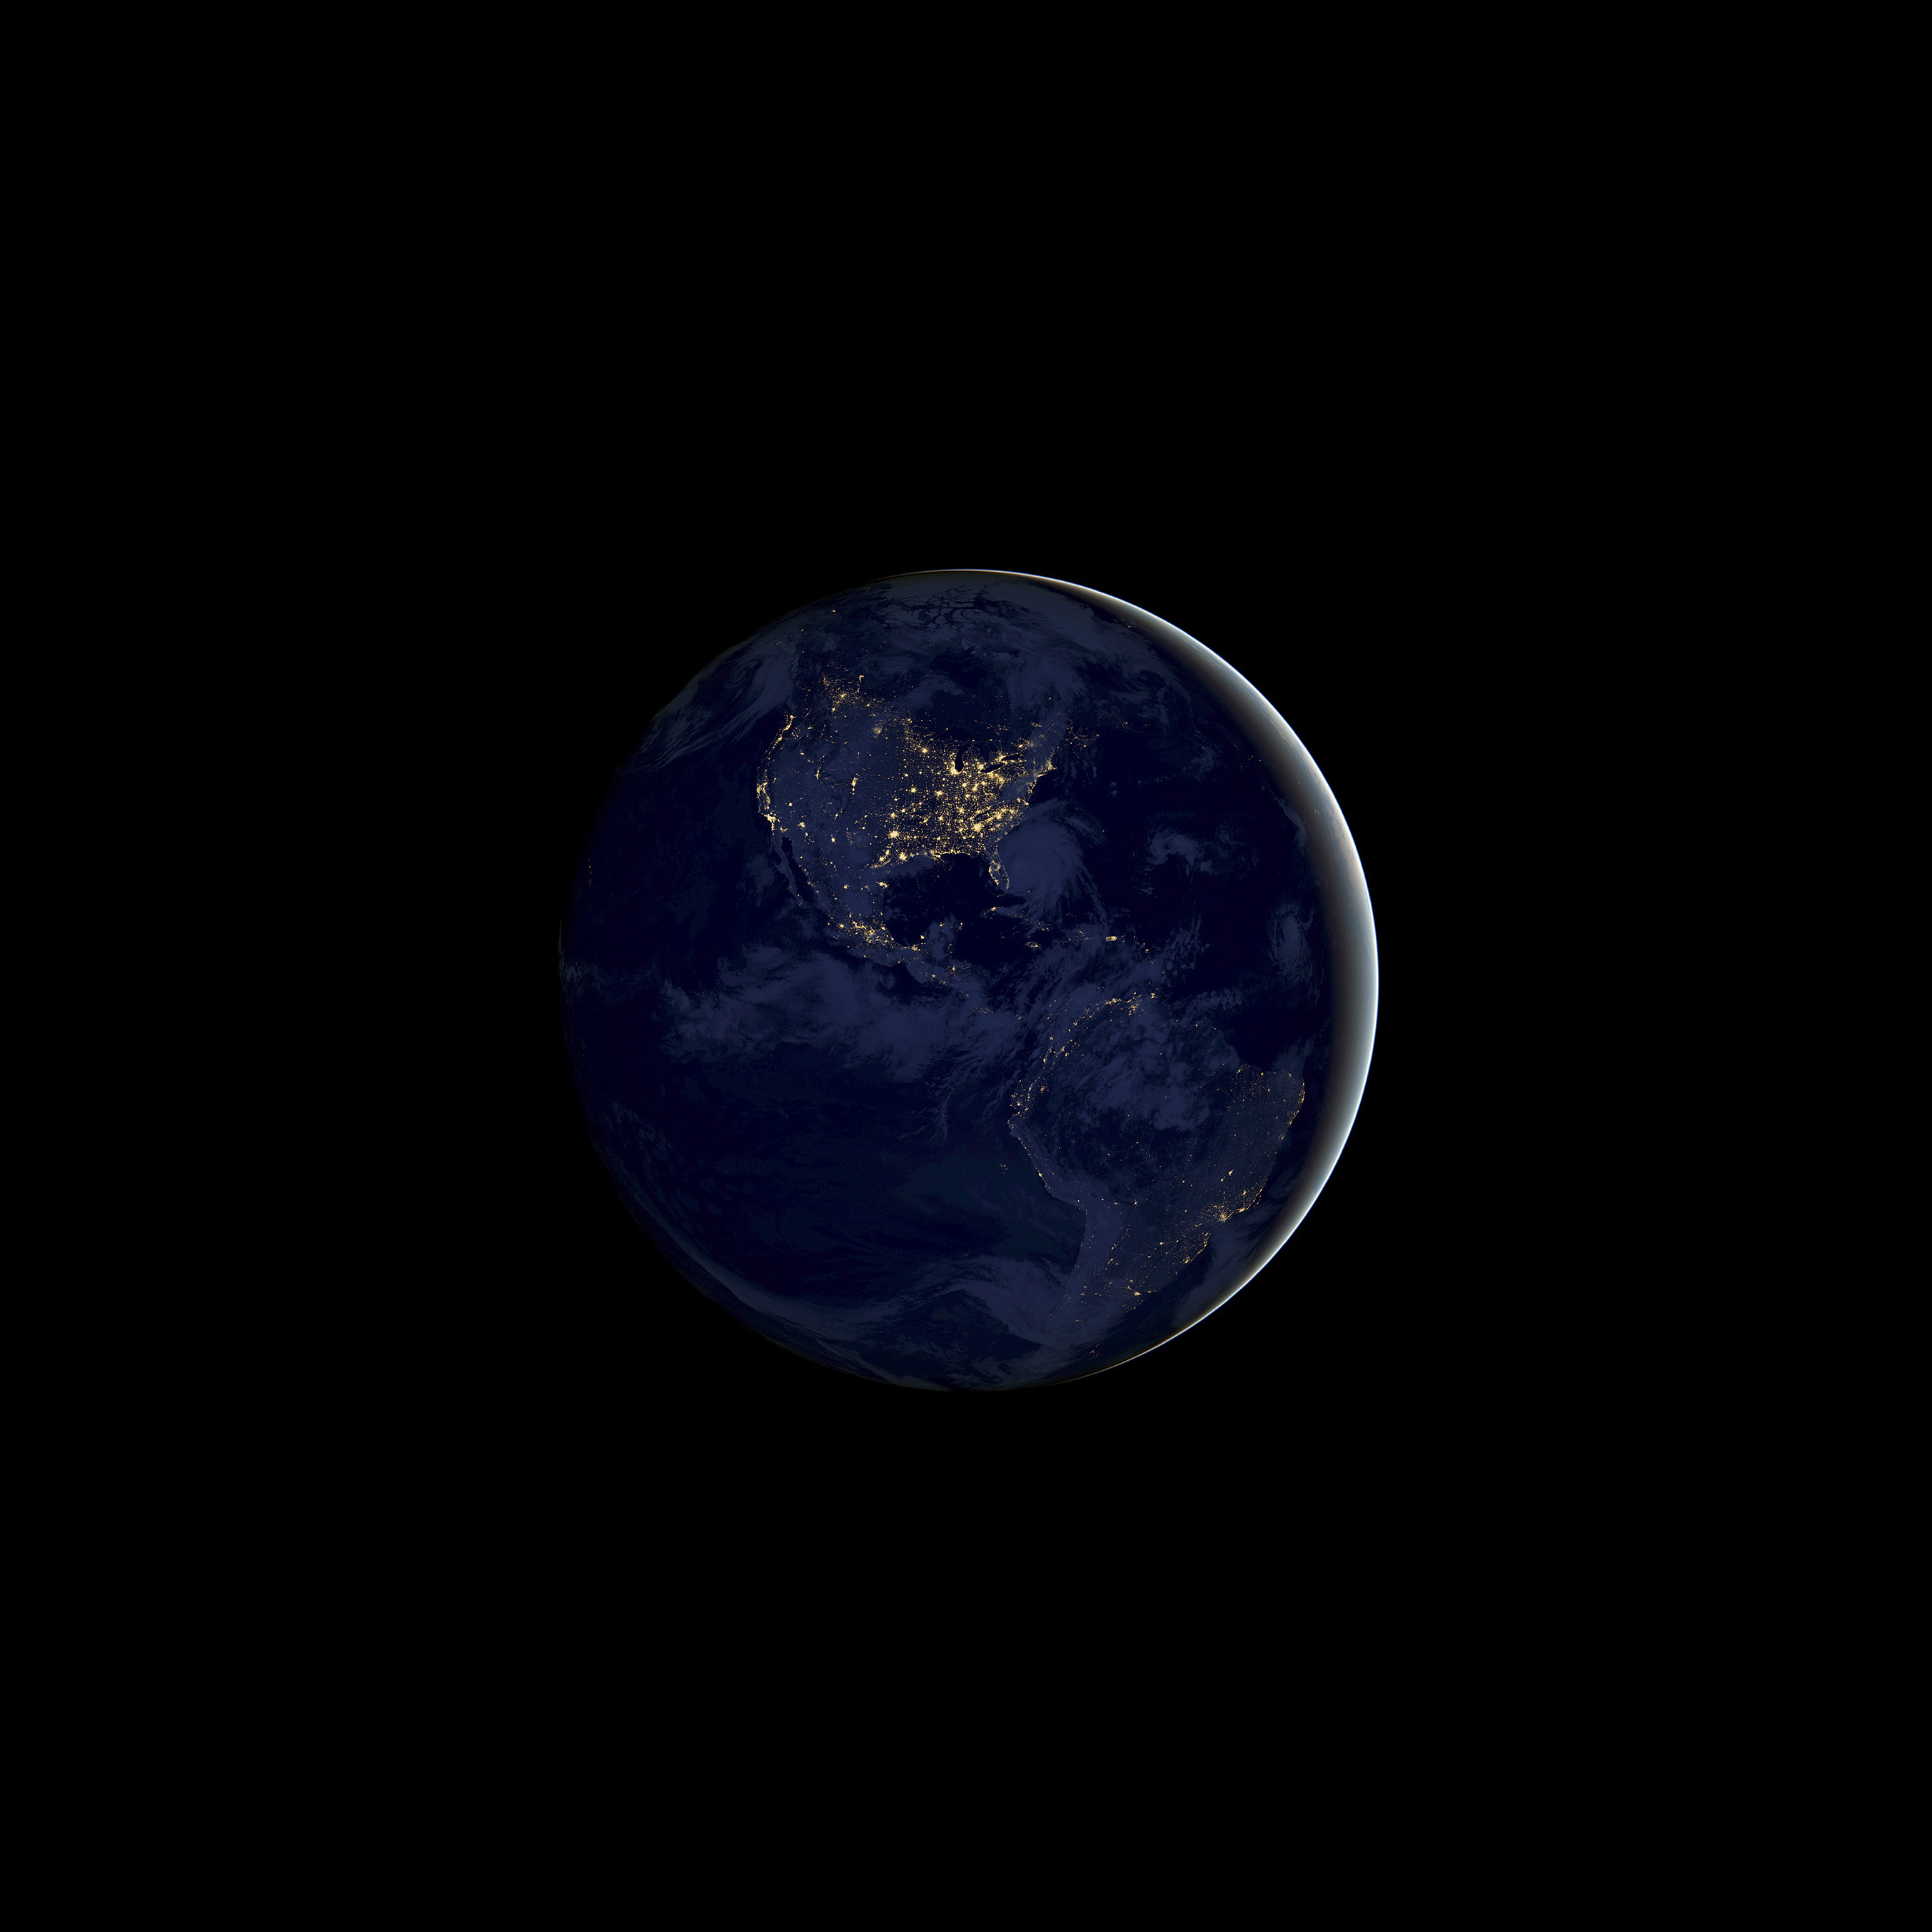 Earth Night Iphone Wallpaper Idrop News